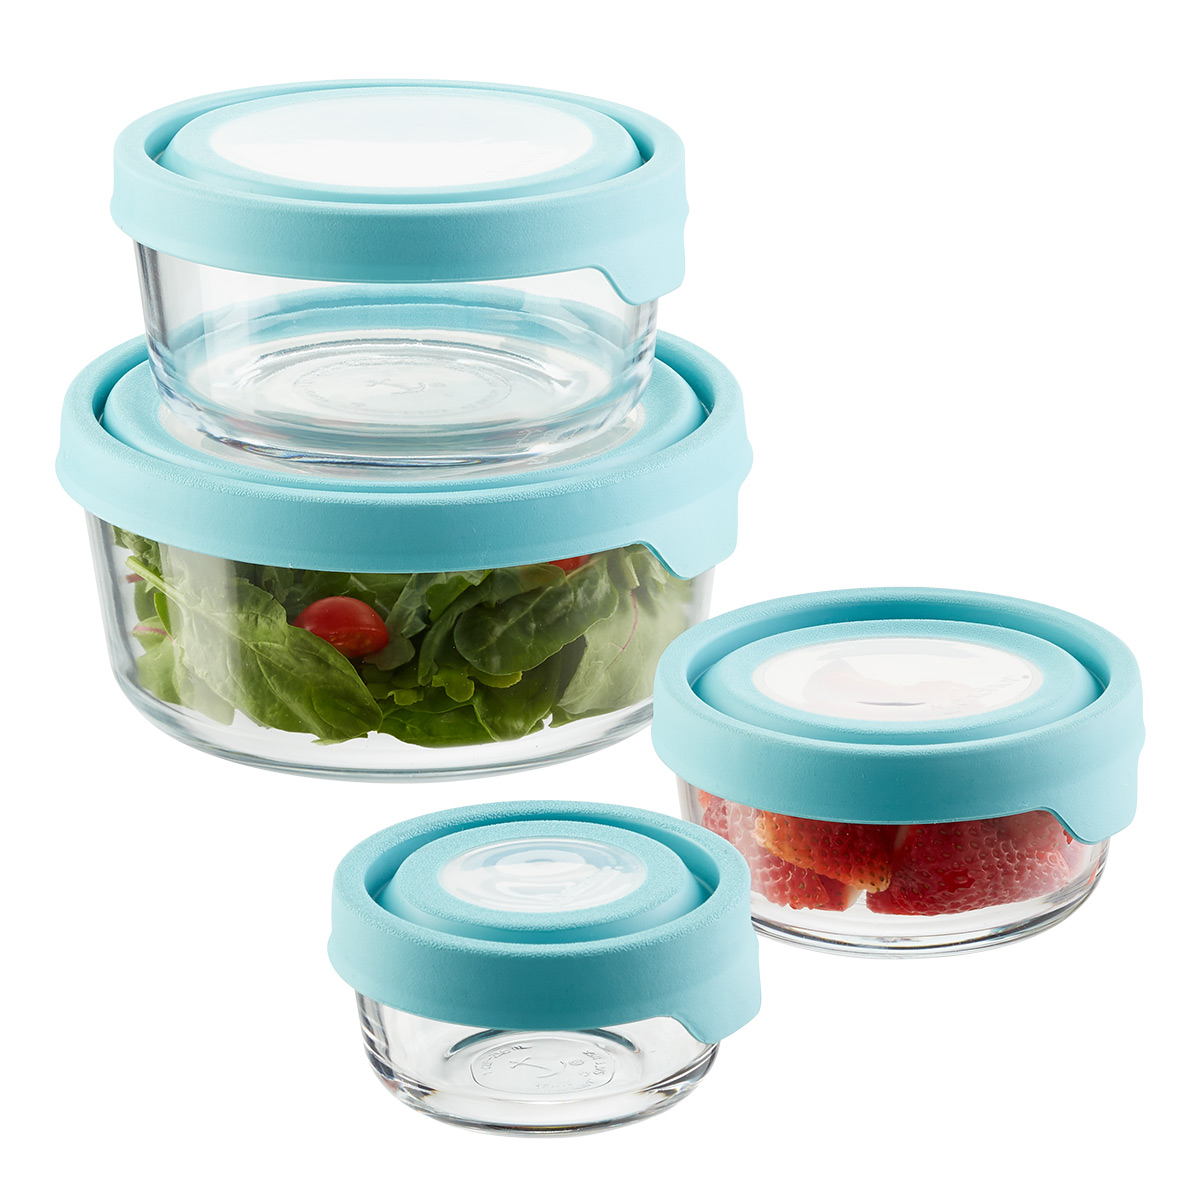 Anchor Hocking Glass TrueSeal Round Food Storage Containers with Blue Lids